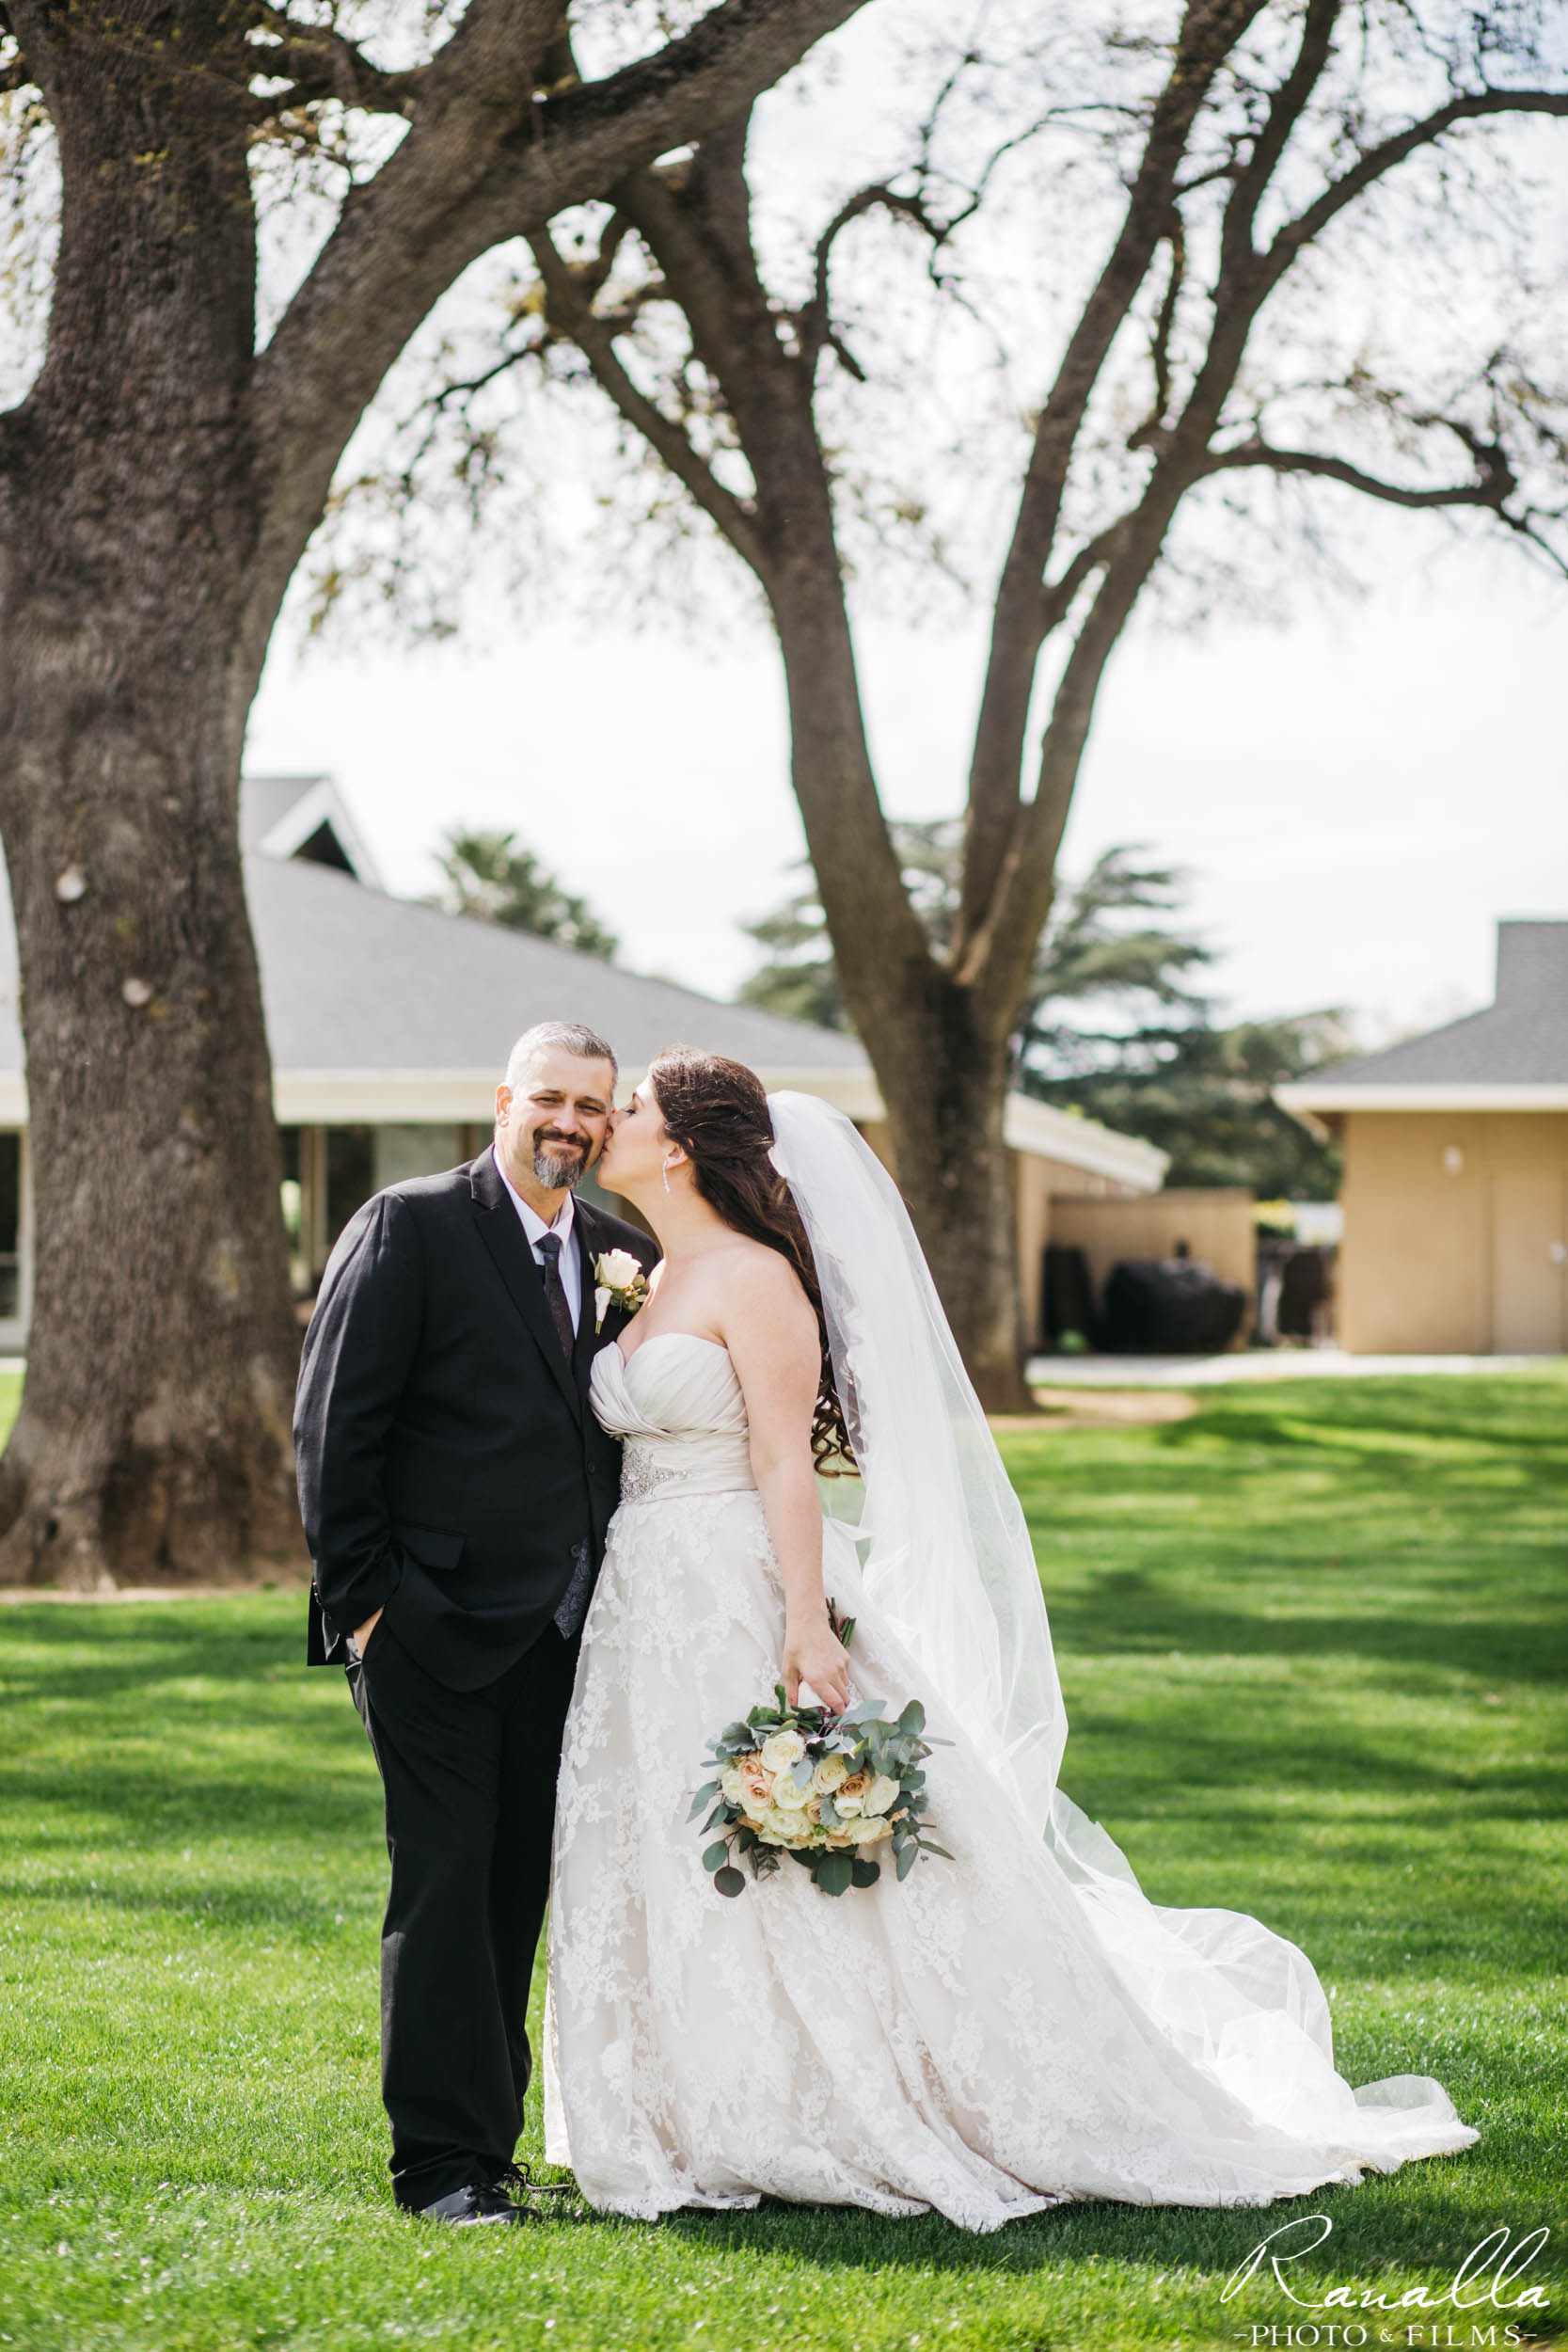 Chico Wedding Photography- Golf Course Wedding Venue- Live Oak Trees- Butte Creek Country Club- Simply Elegant Bridal- Lavender Blue- Ranalla Photo & Films